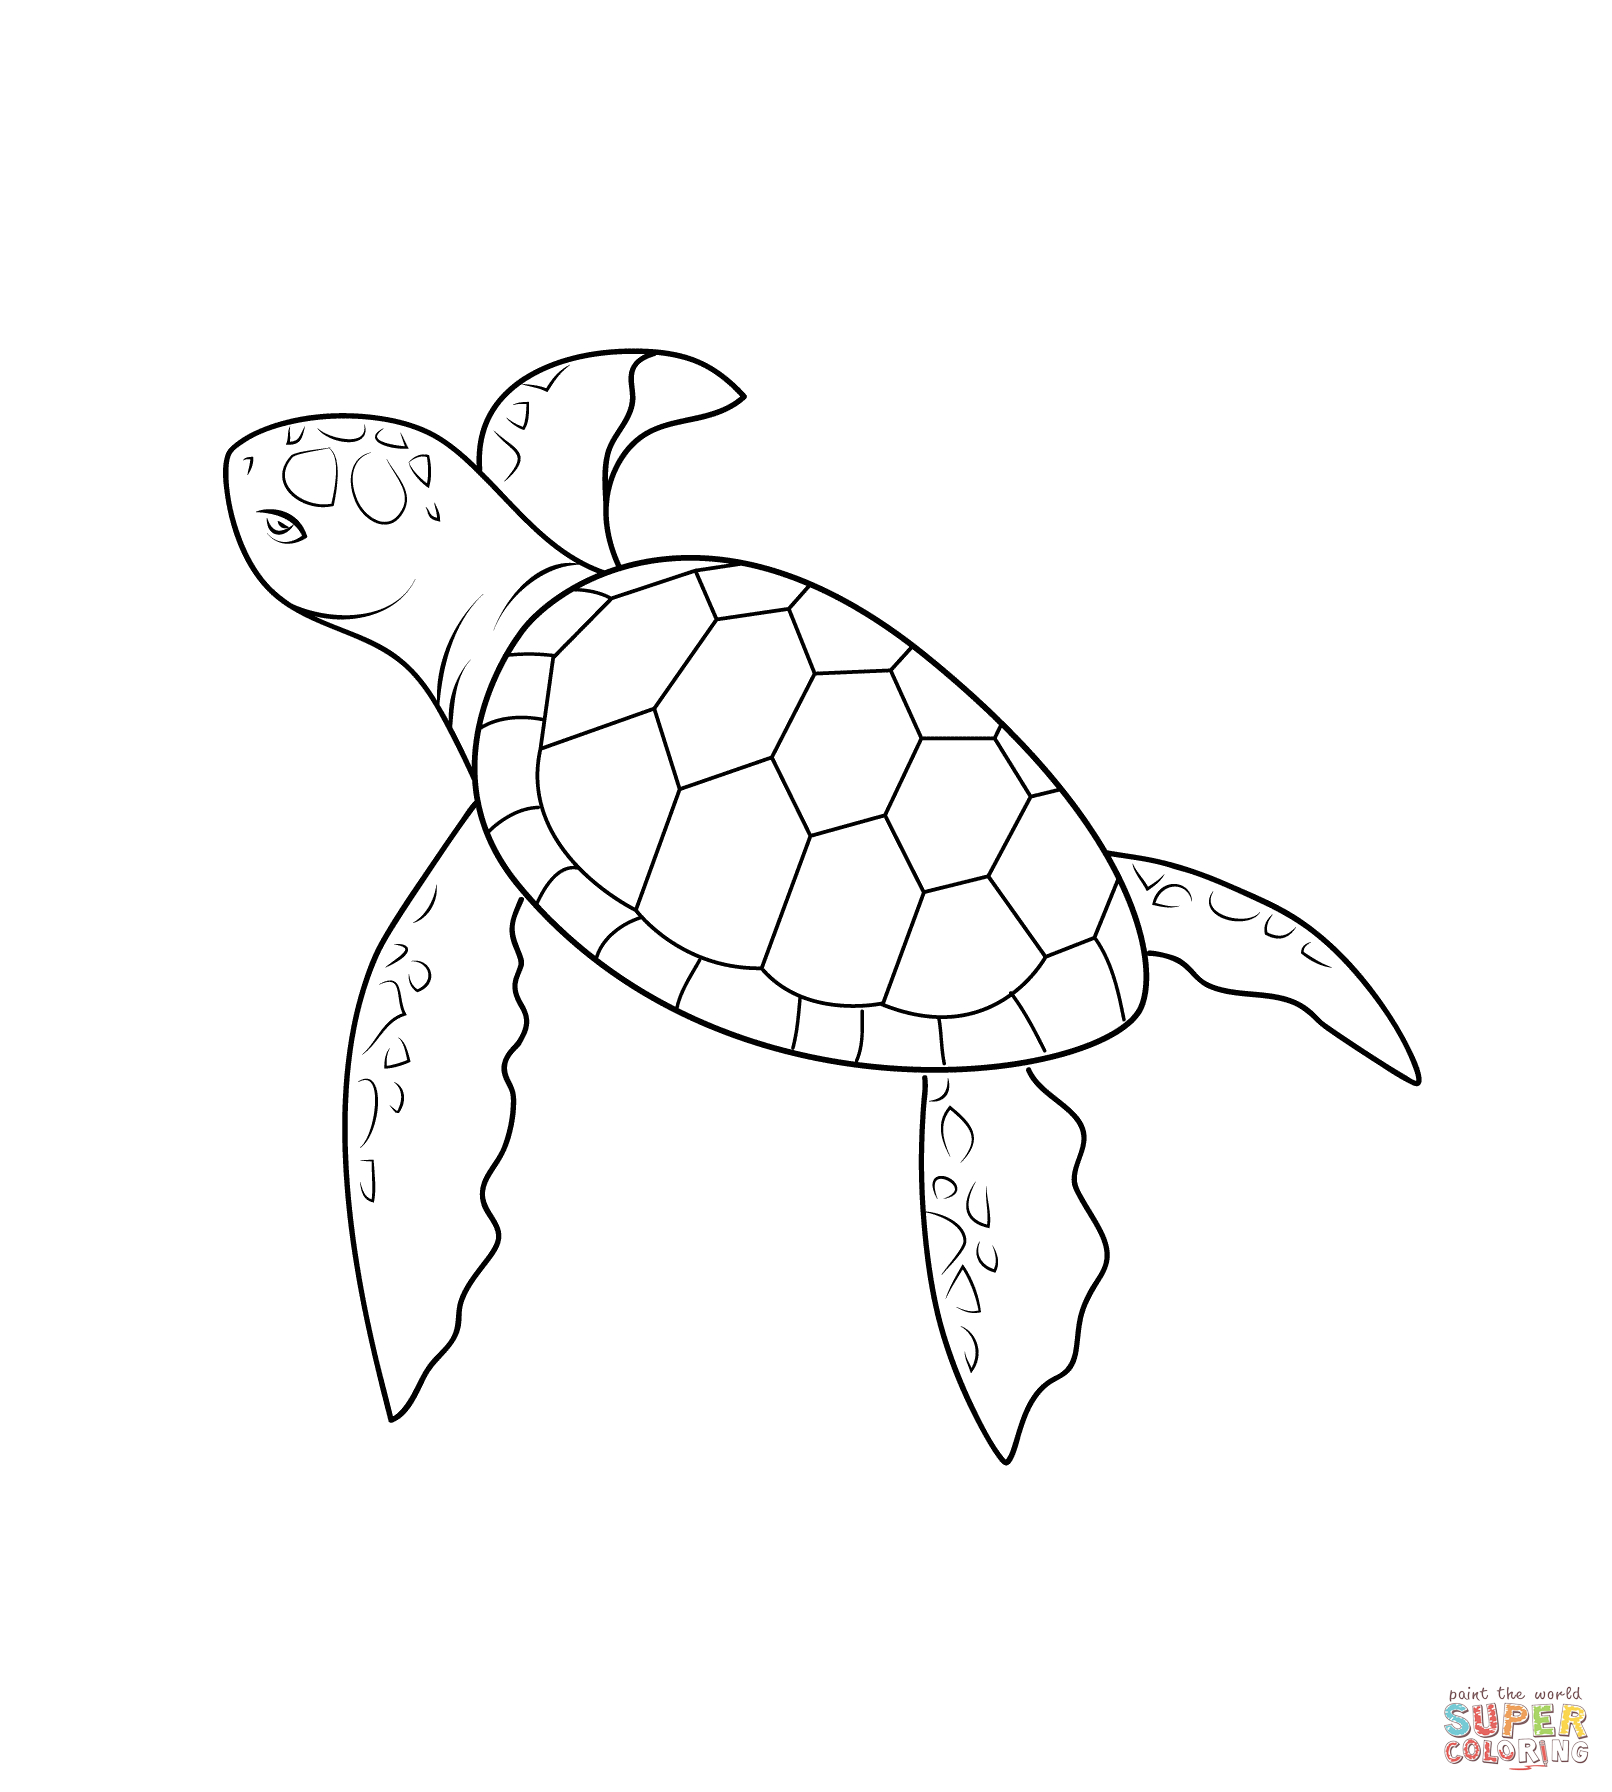 35 Latest Sea Turtle Drawing Step By Step Easy